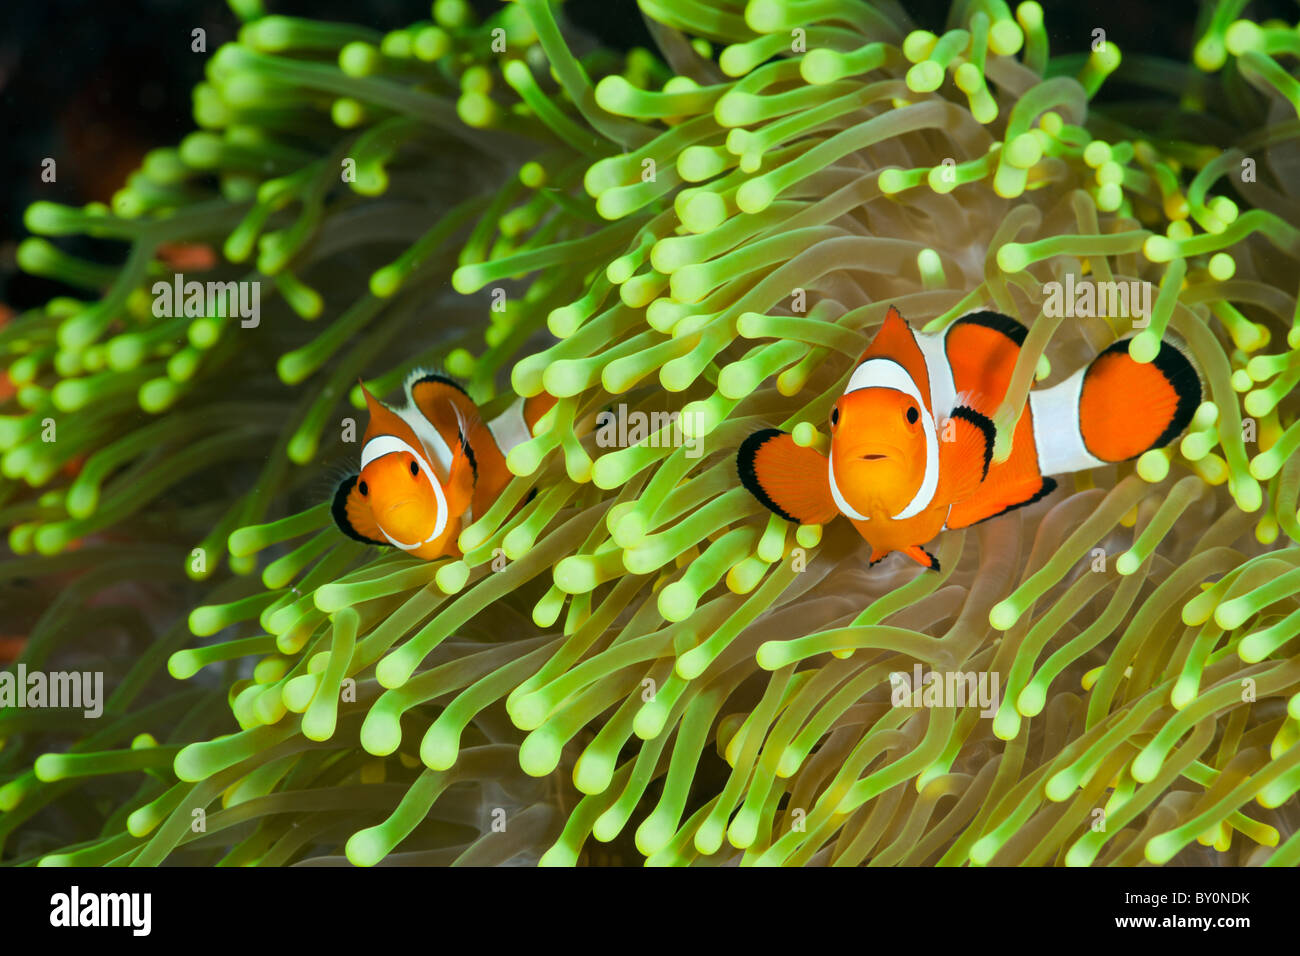 Payaso Amphiprion percula Anemonefish, Alam, Batu, Bali, Indonesia Imagen De Stock